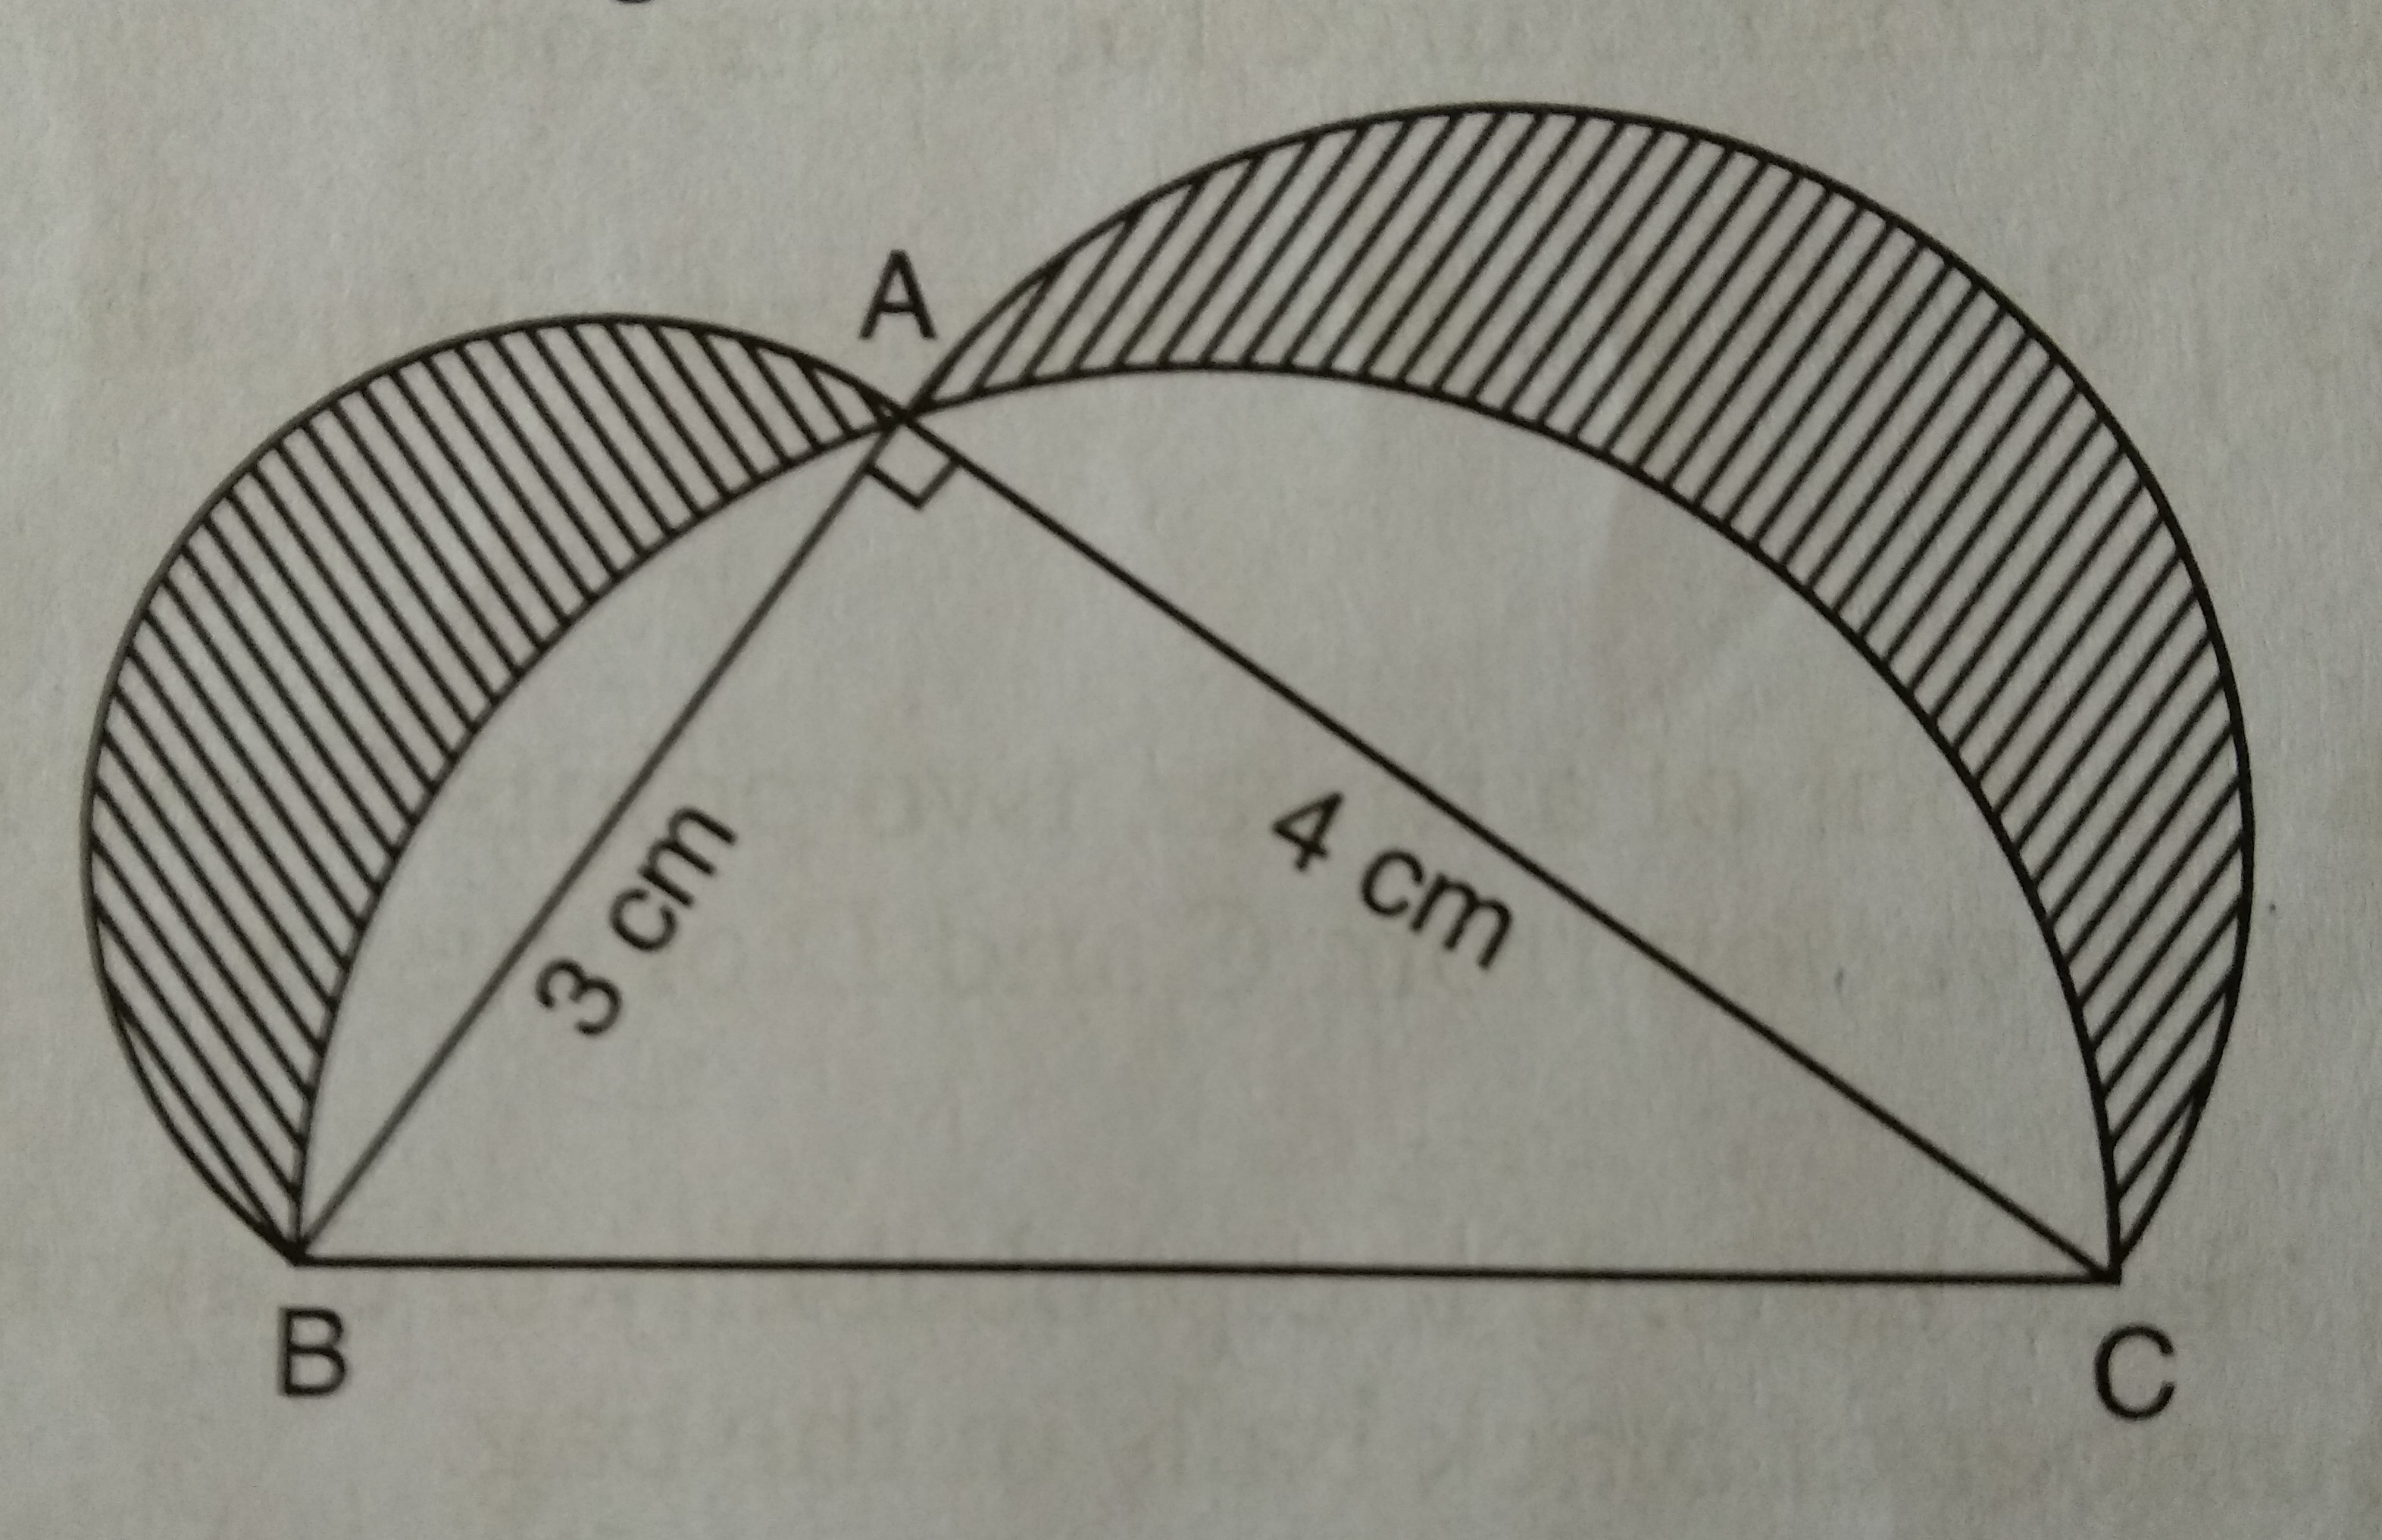 In The Given Figure Triangle Abc Is A Right Angle Triangle